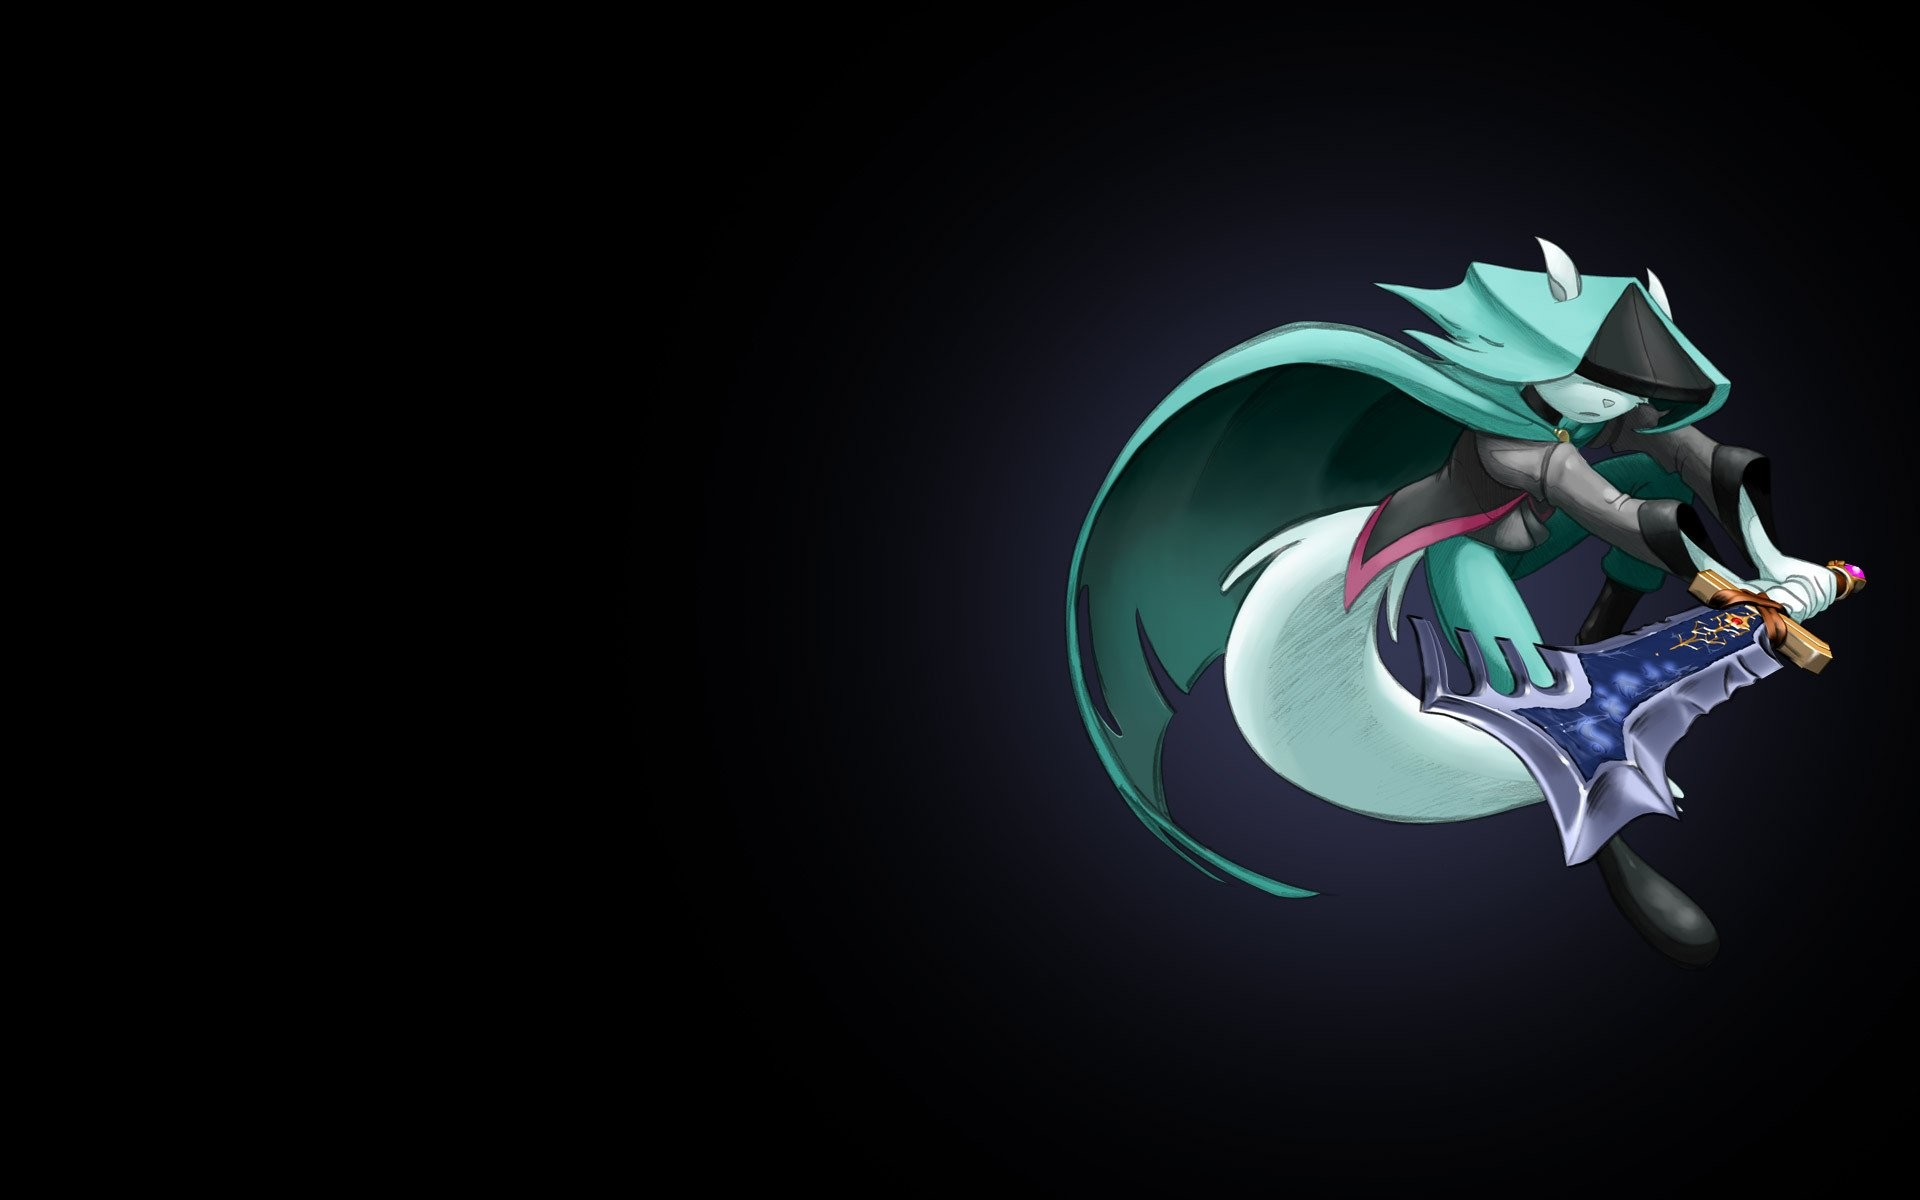 HD Wallpaper   Background ID:622071. Video Game Dust: An Elysian  Tail. 1 Like